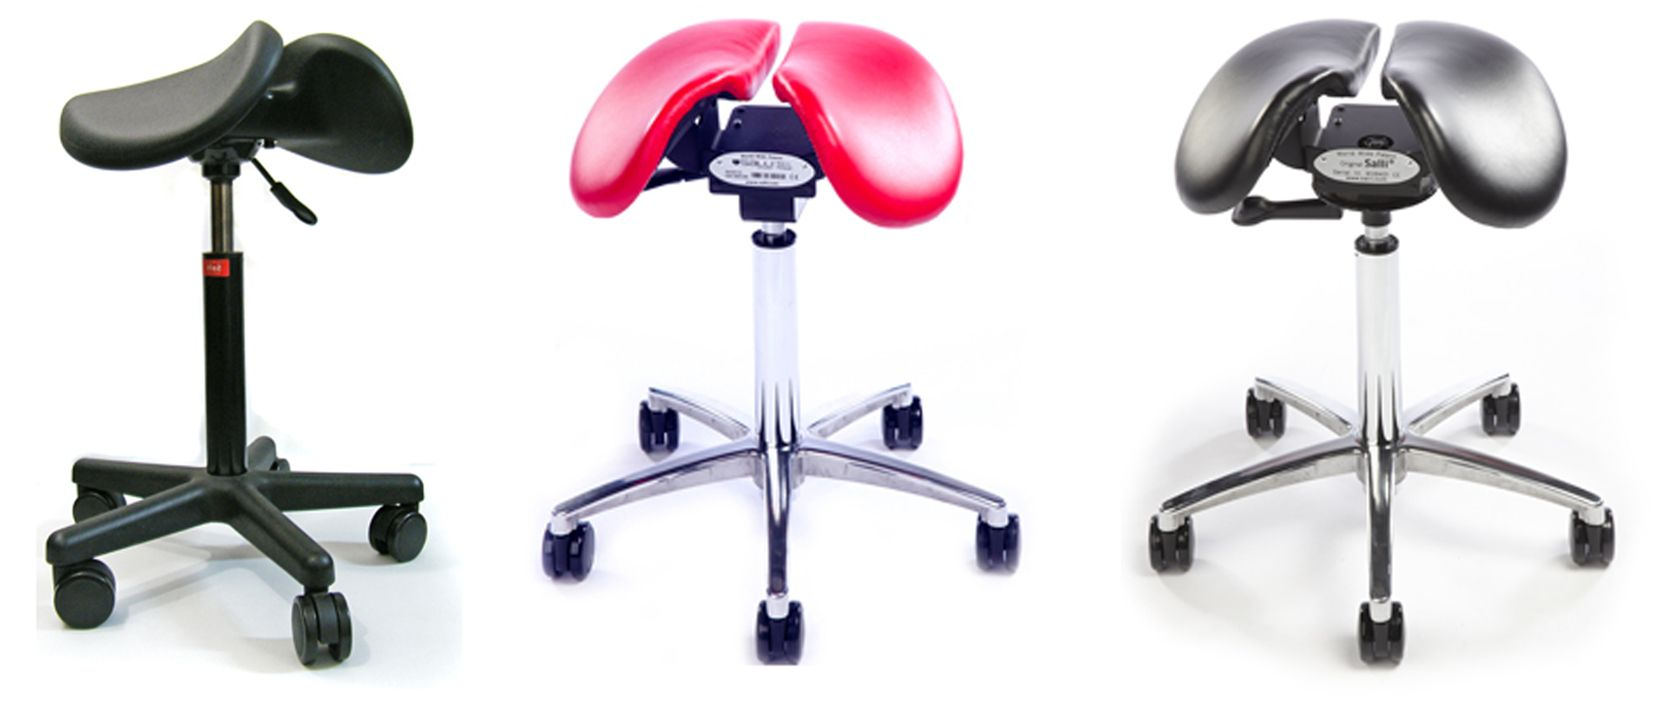 portable dental chair philippines bedroom chairs nz buy high quality in the domain corp mabuhay